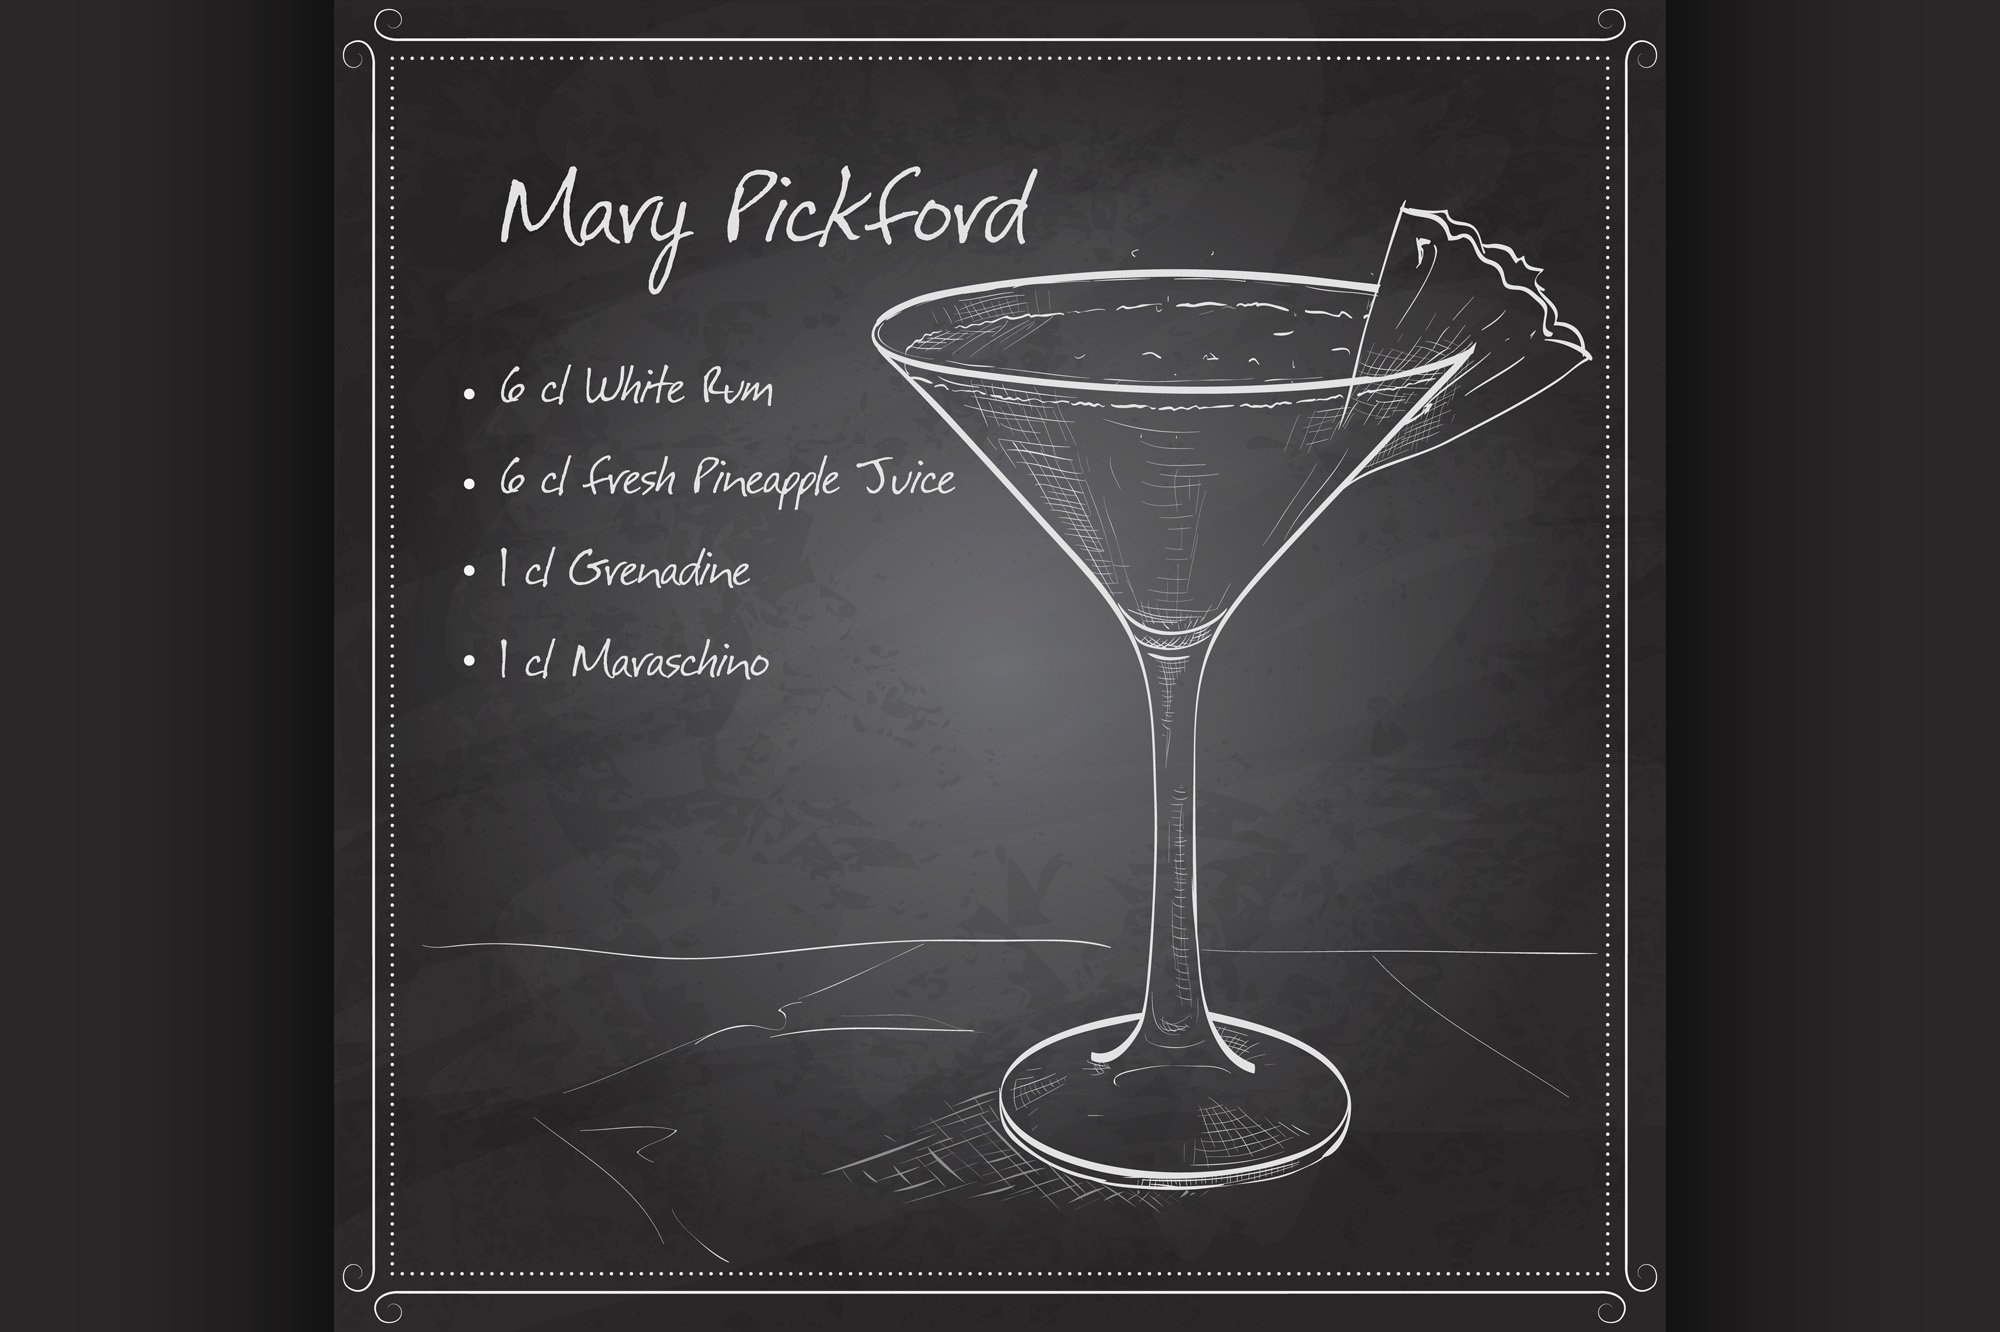 Cocktail Mary Pickford on black board example image 1